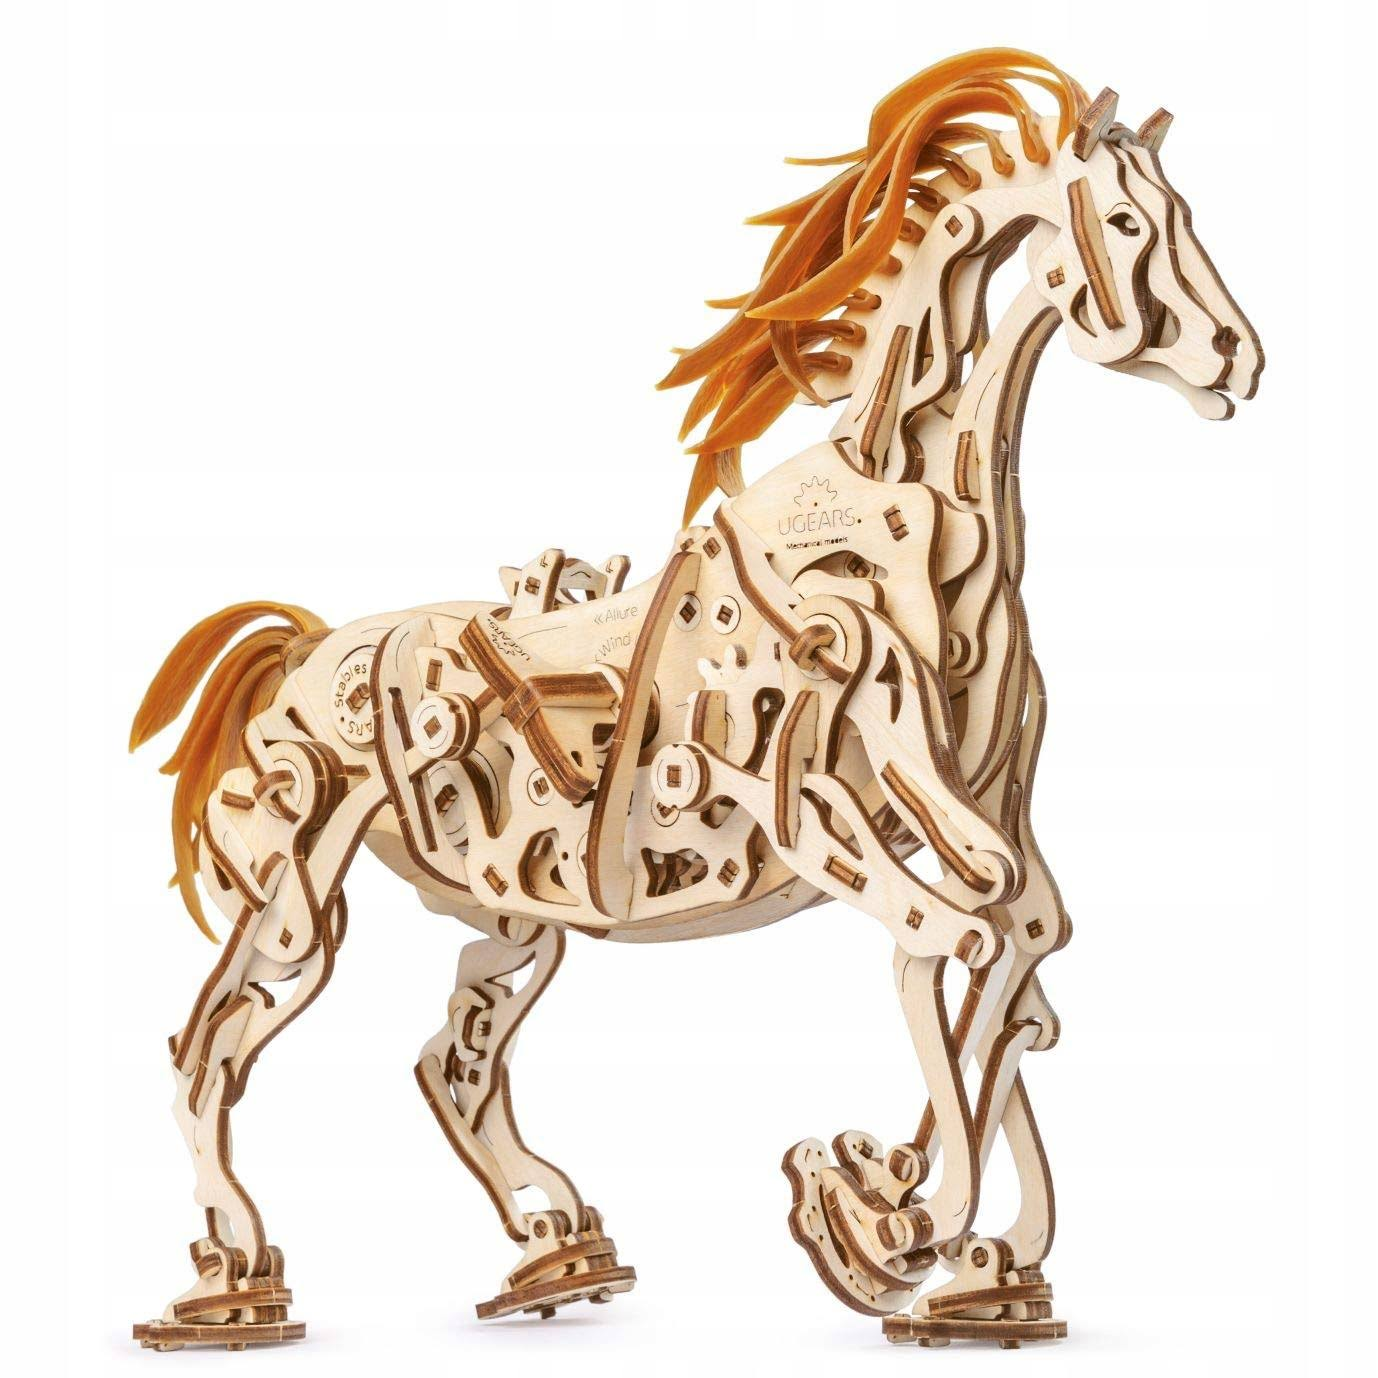 UGears Horse-Mechanoid Wooden 3D Model Kit